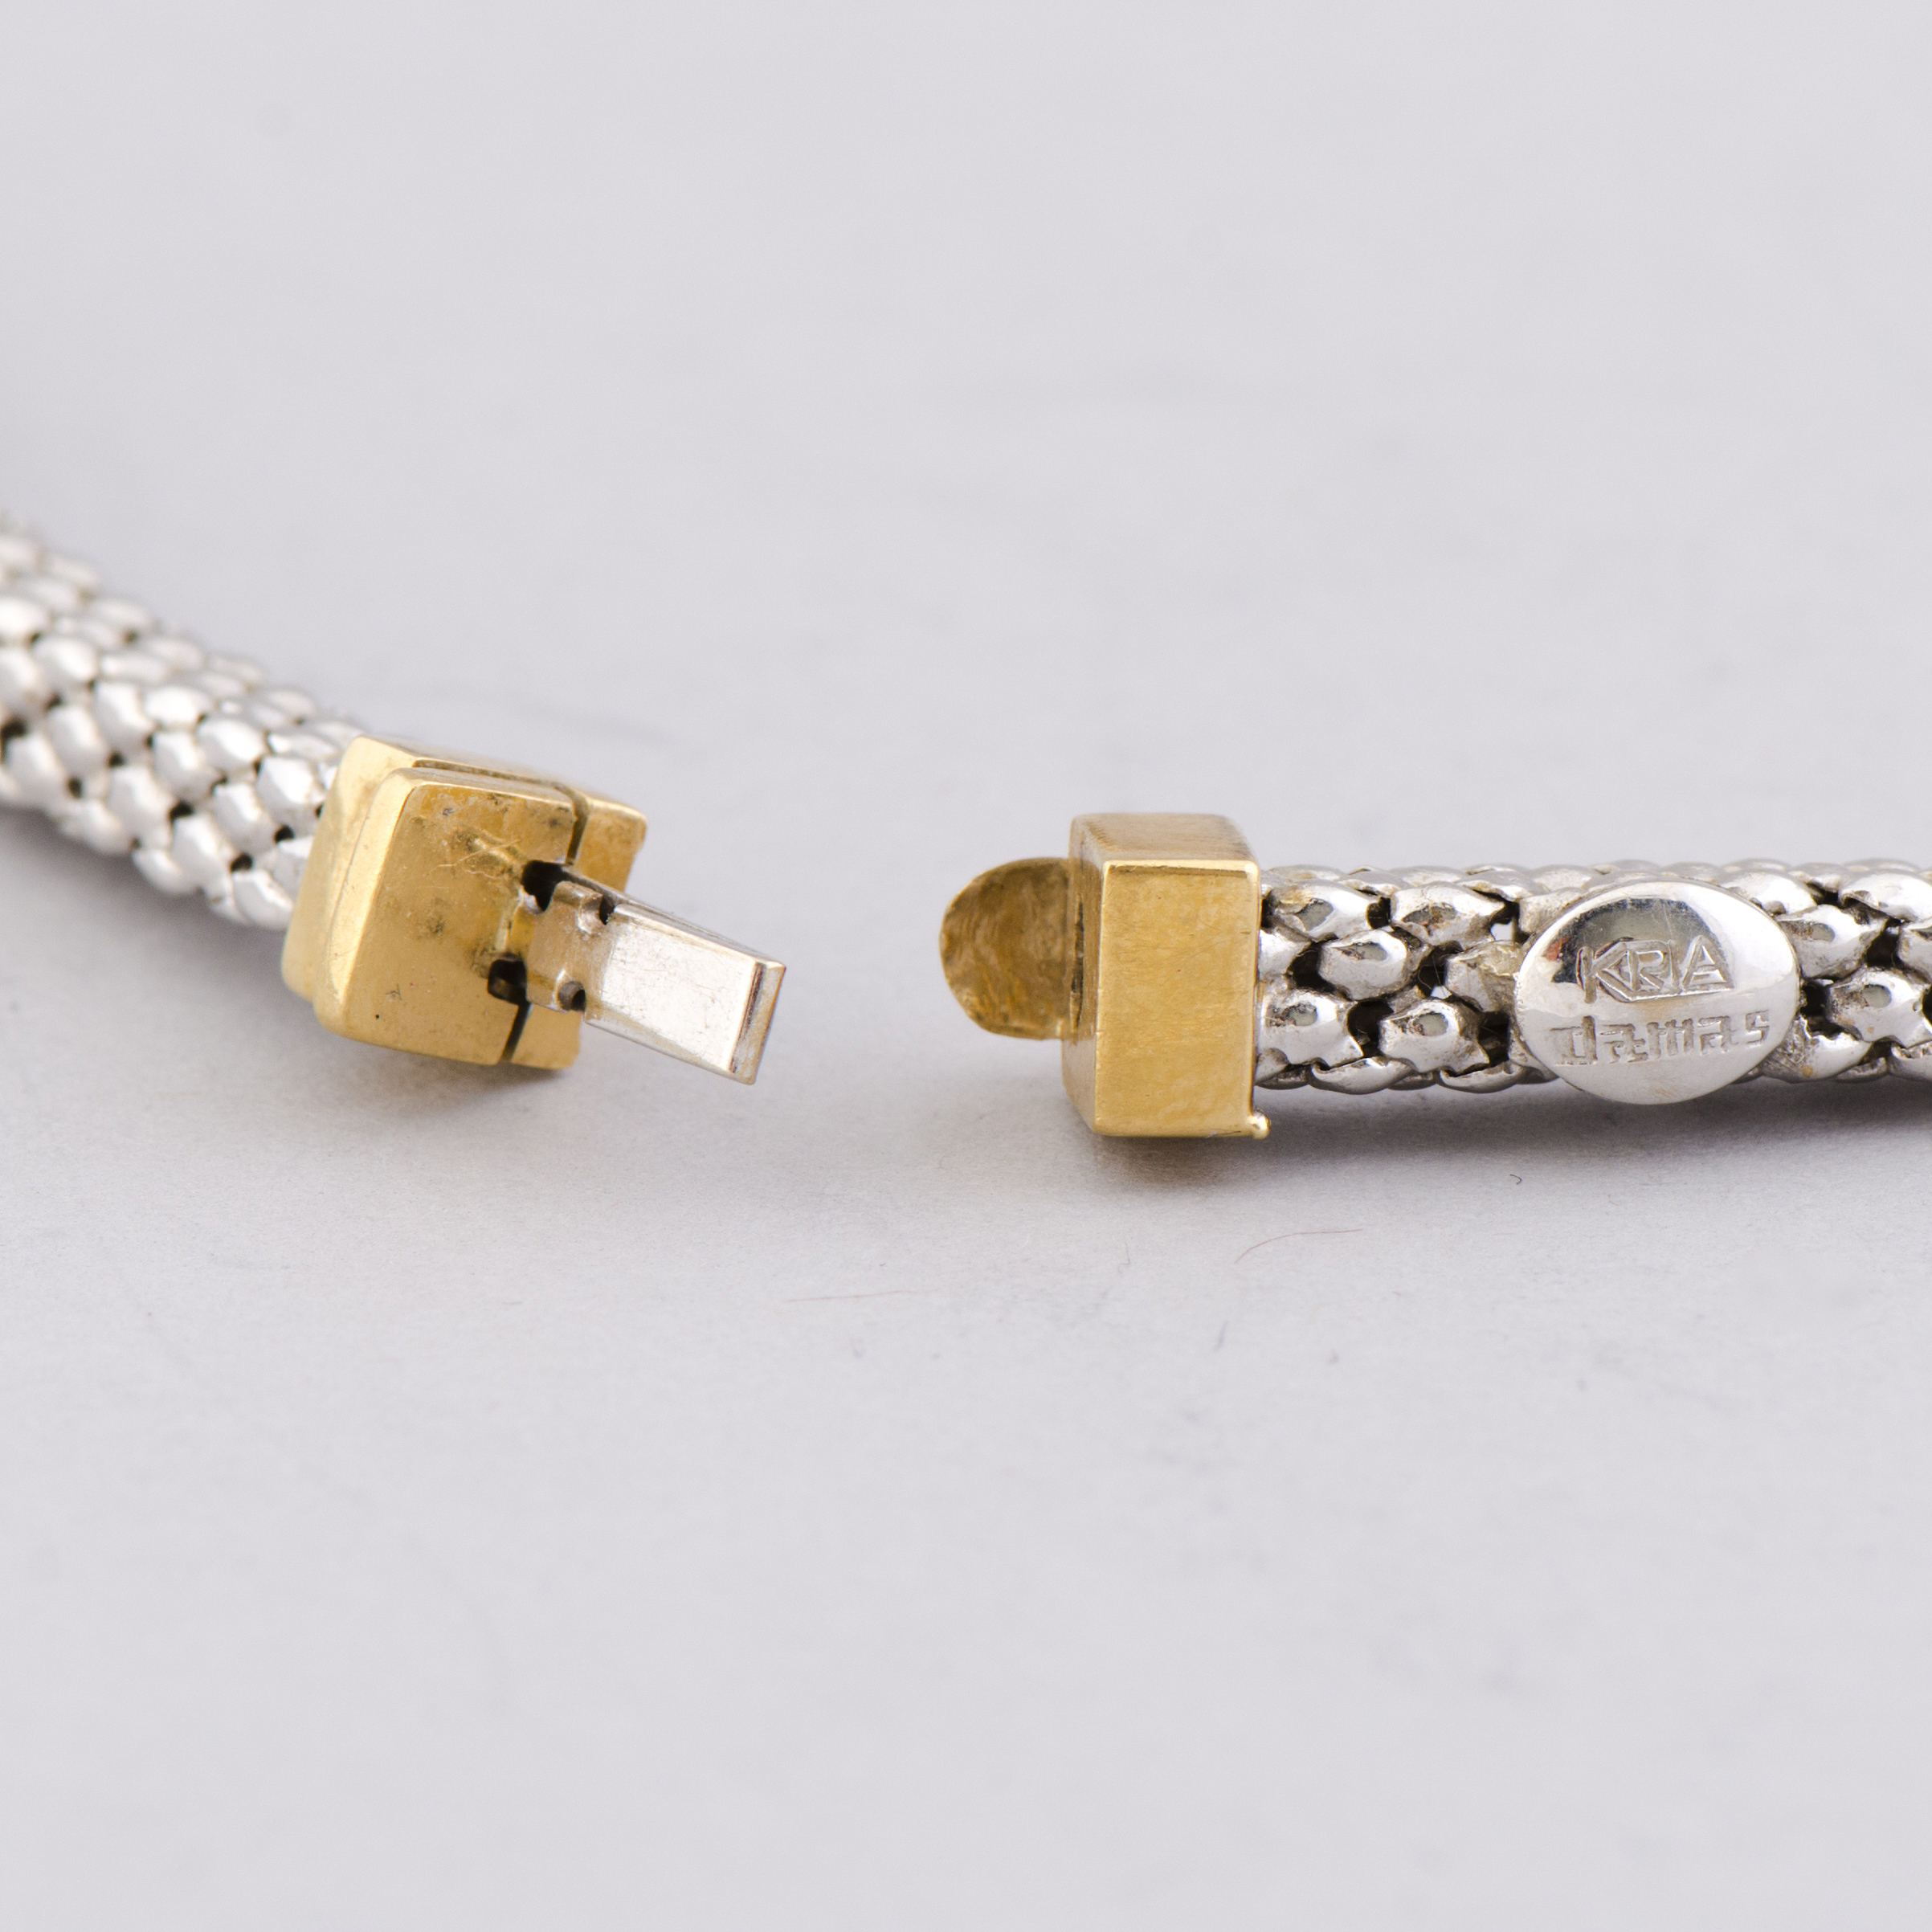 A NECKLACE, chain in 18K white gold, gold details  Kria